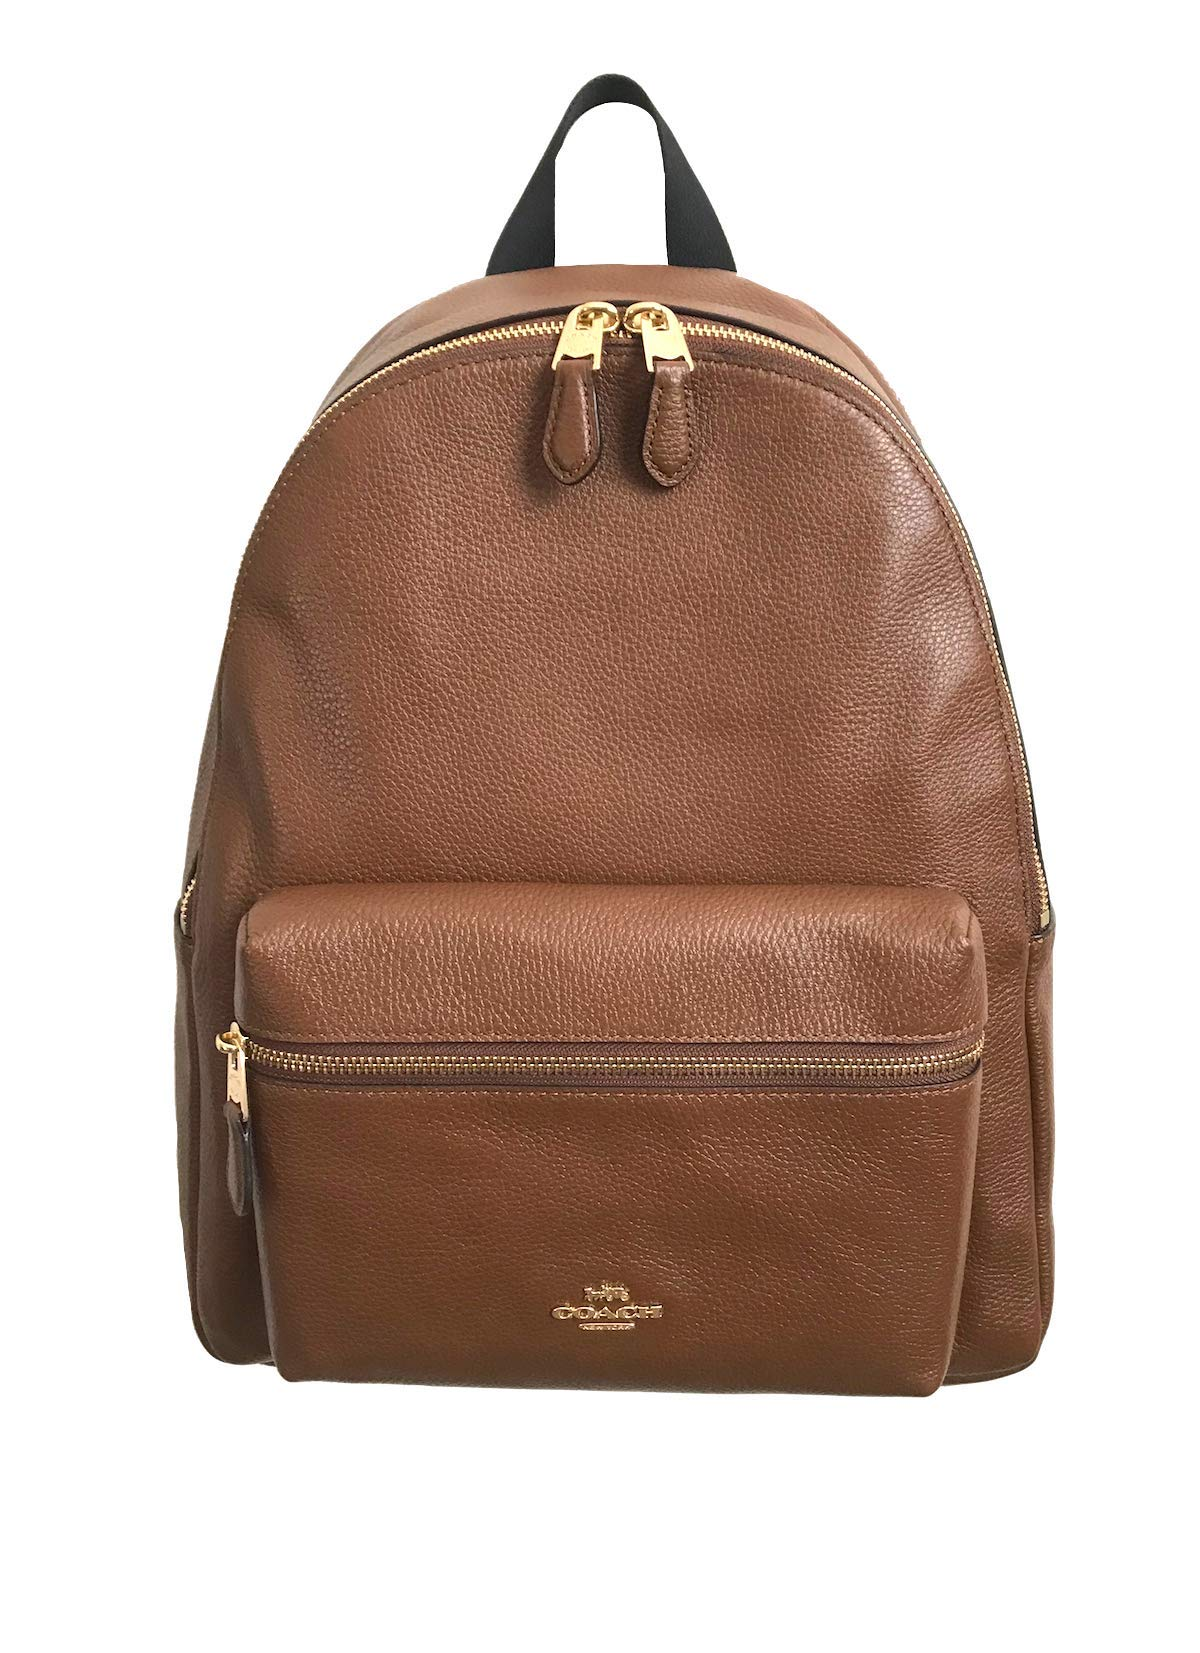 b8d81bff8a Galleon - Coach Charlie Pebble Leather Backpack F38288 (Saddle)